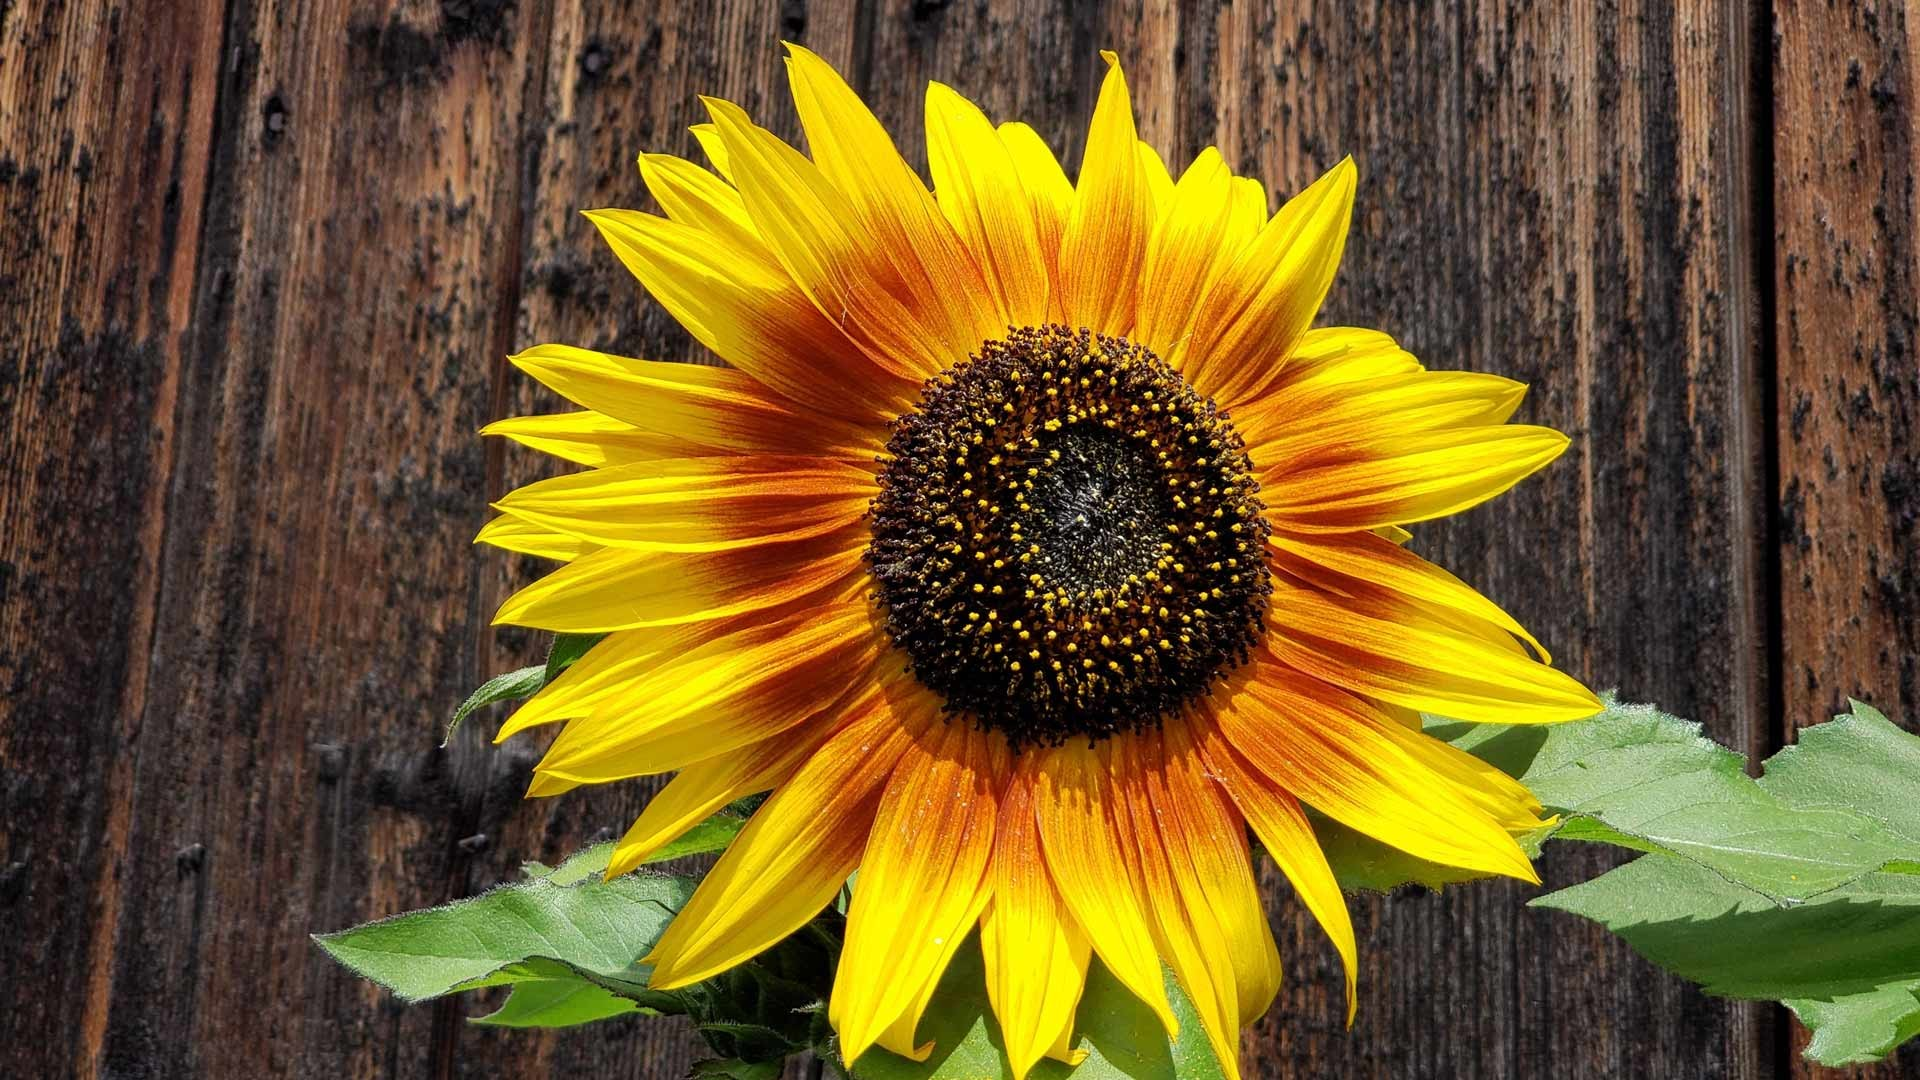 sunflower used as brand recognition for AllerGale Design